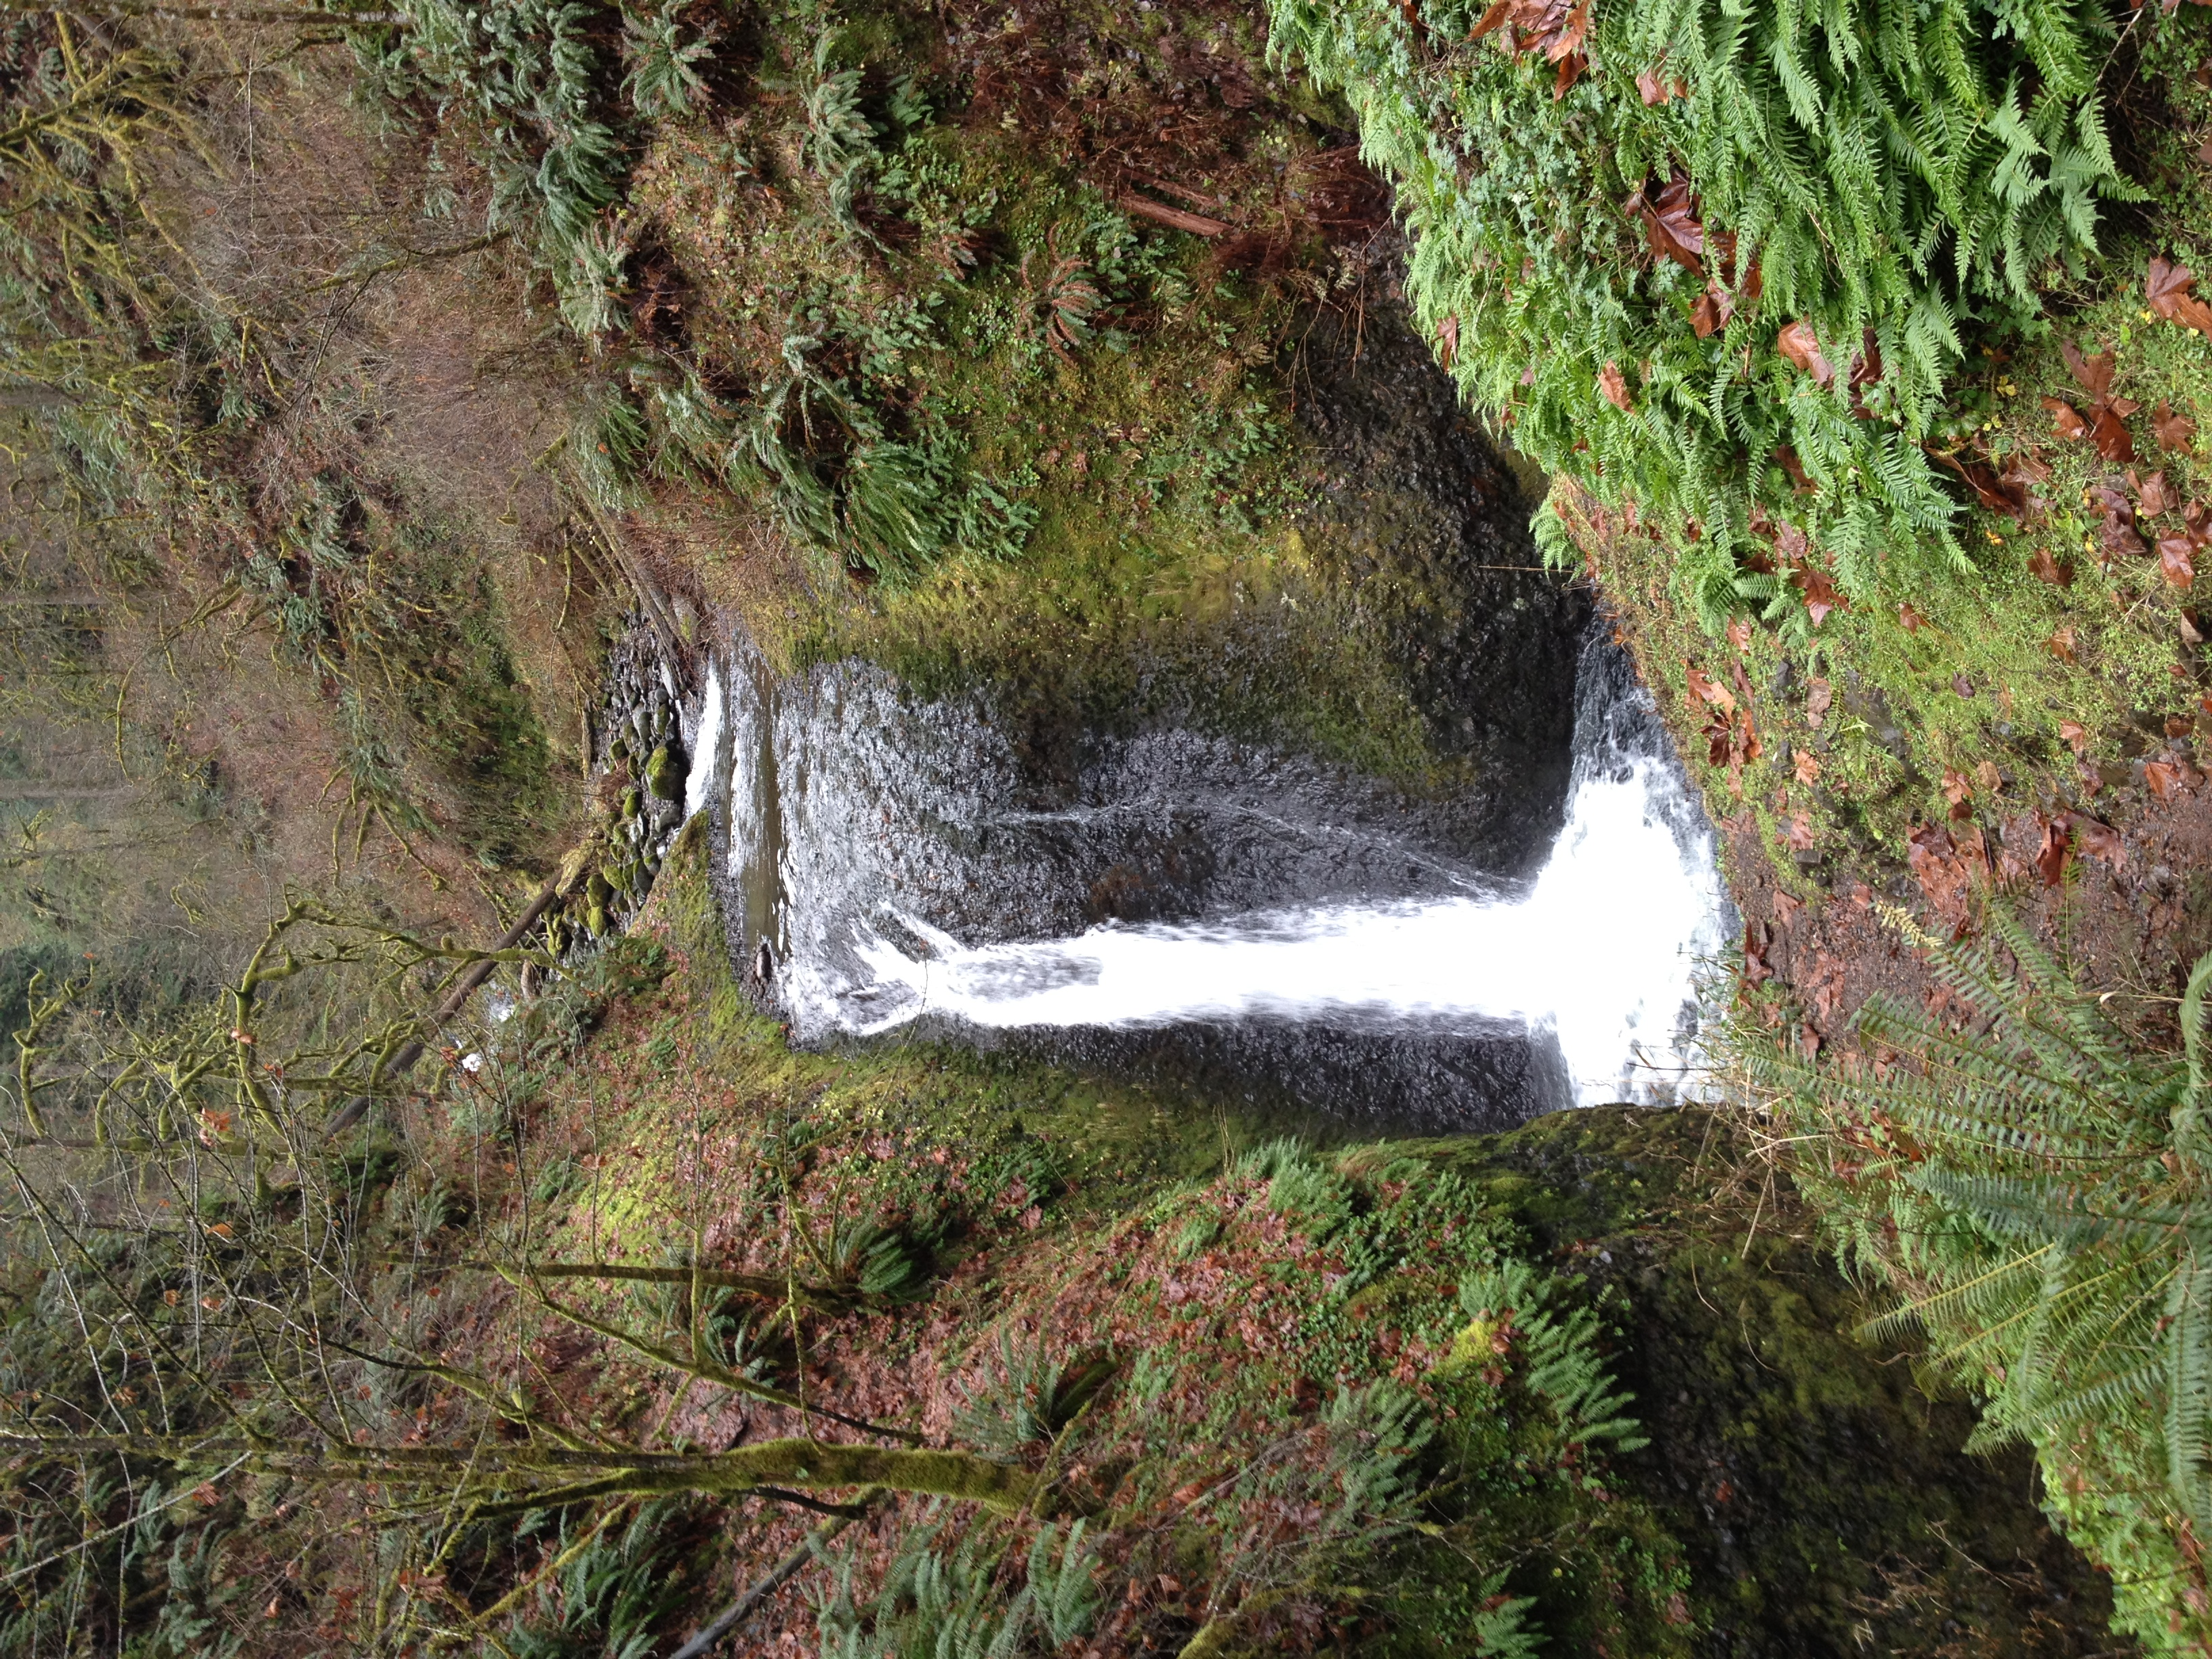 A hike in the beautiful Gorge continues the holiday merriment